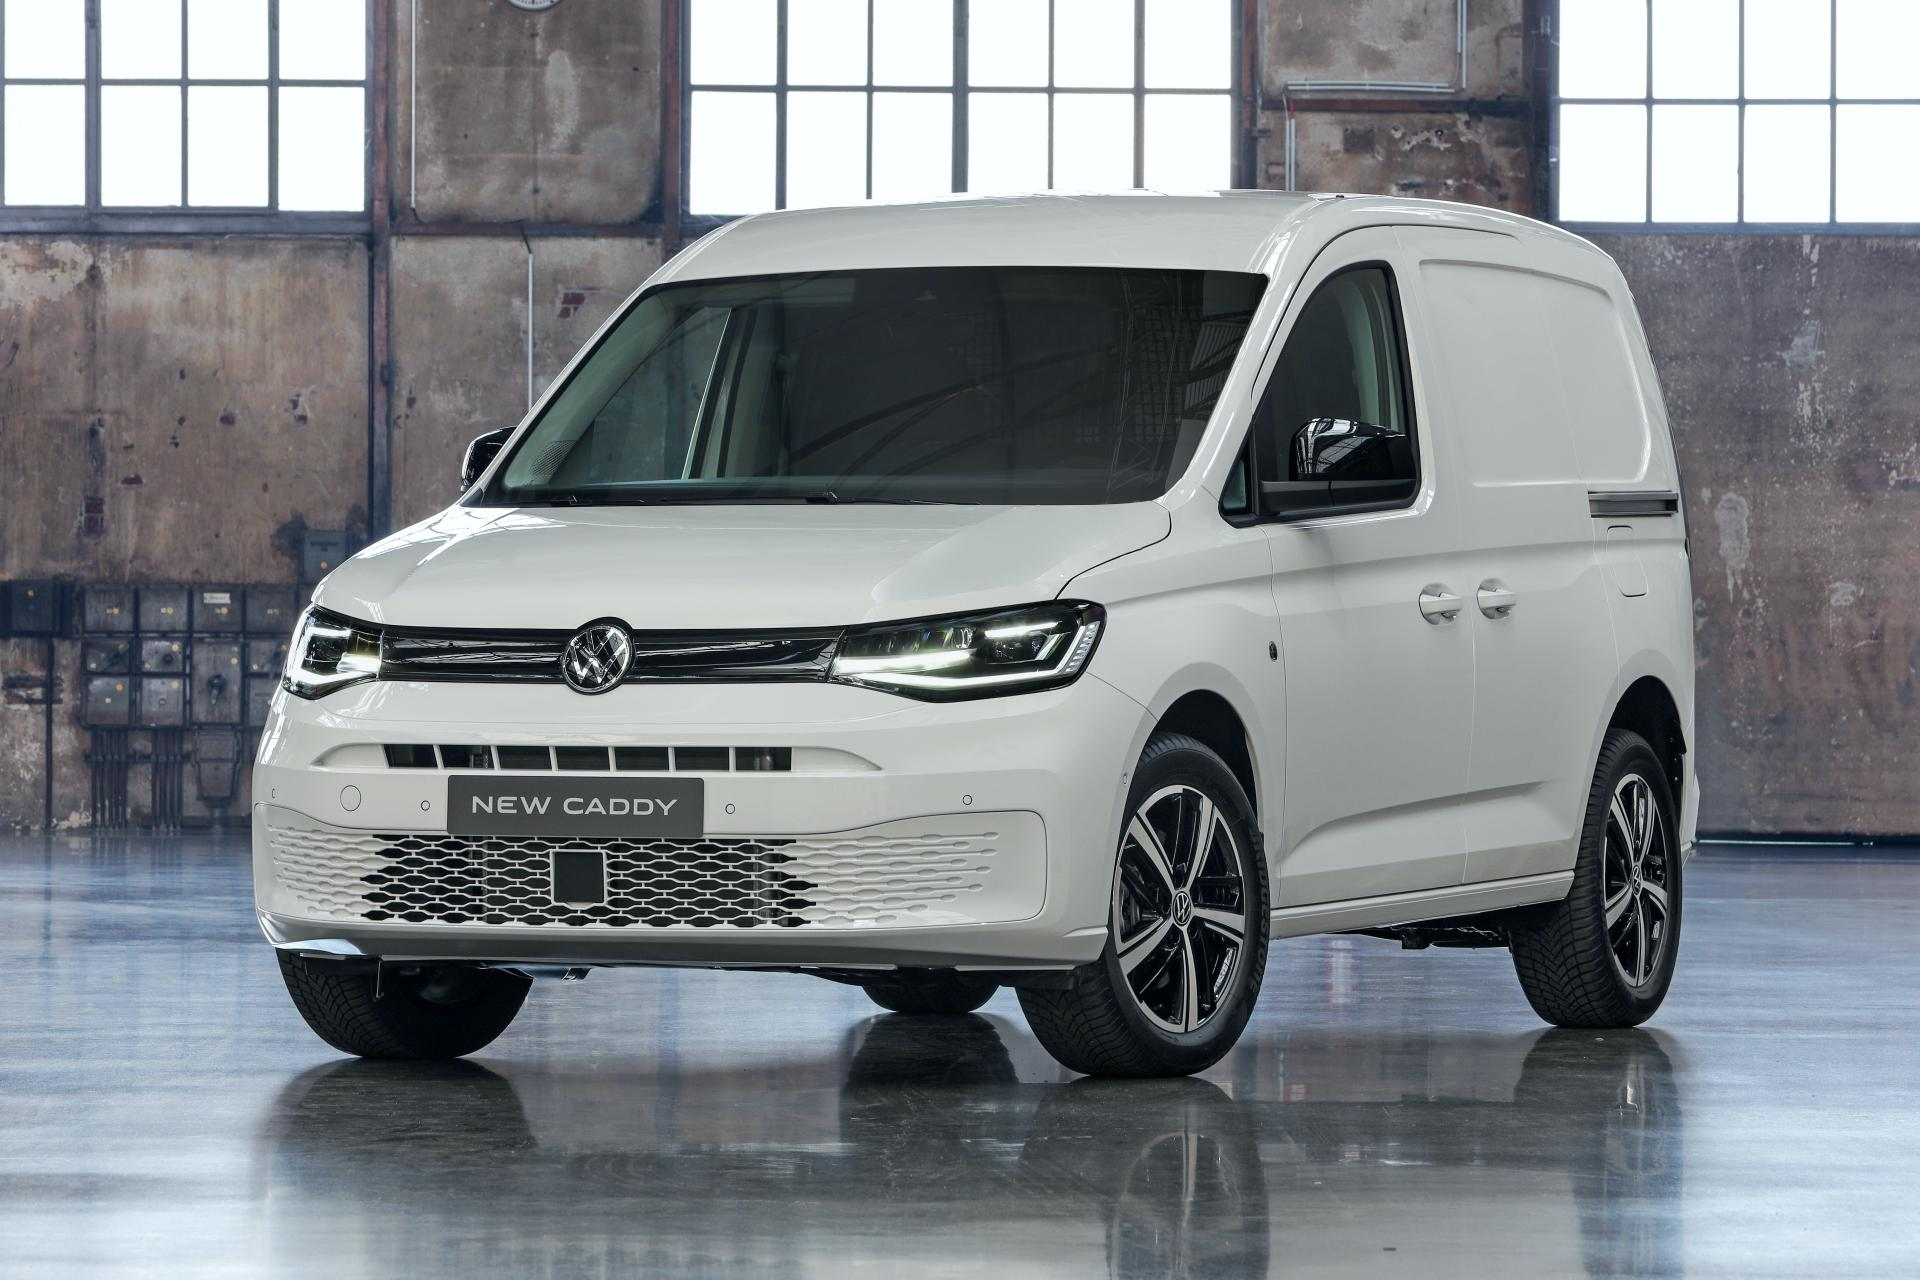 Volkswagen Caddy 2020 Cargo